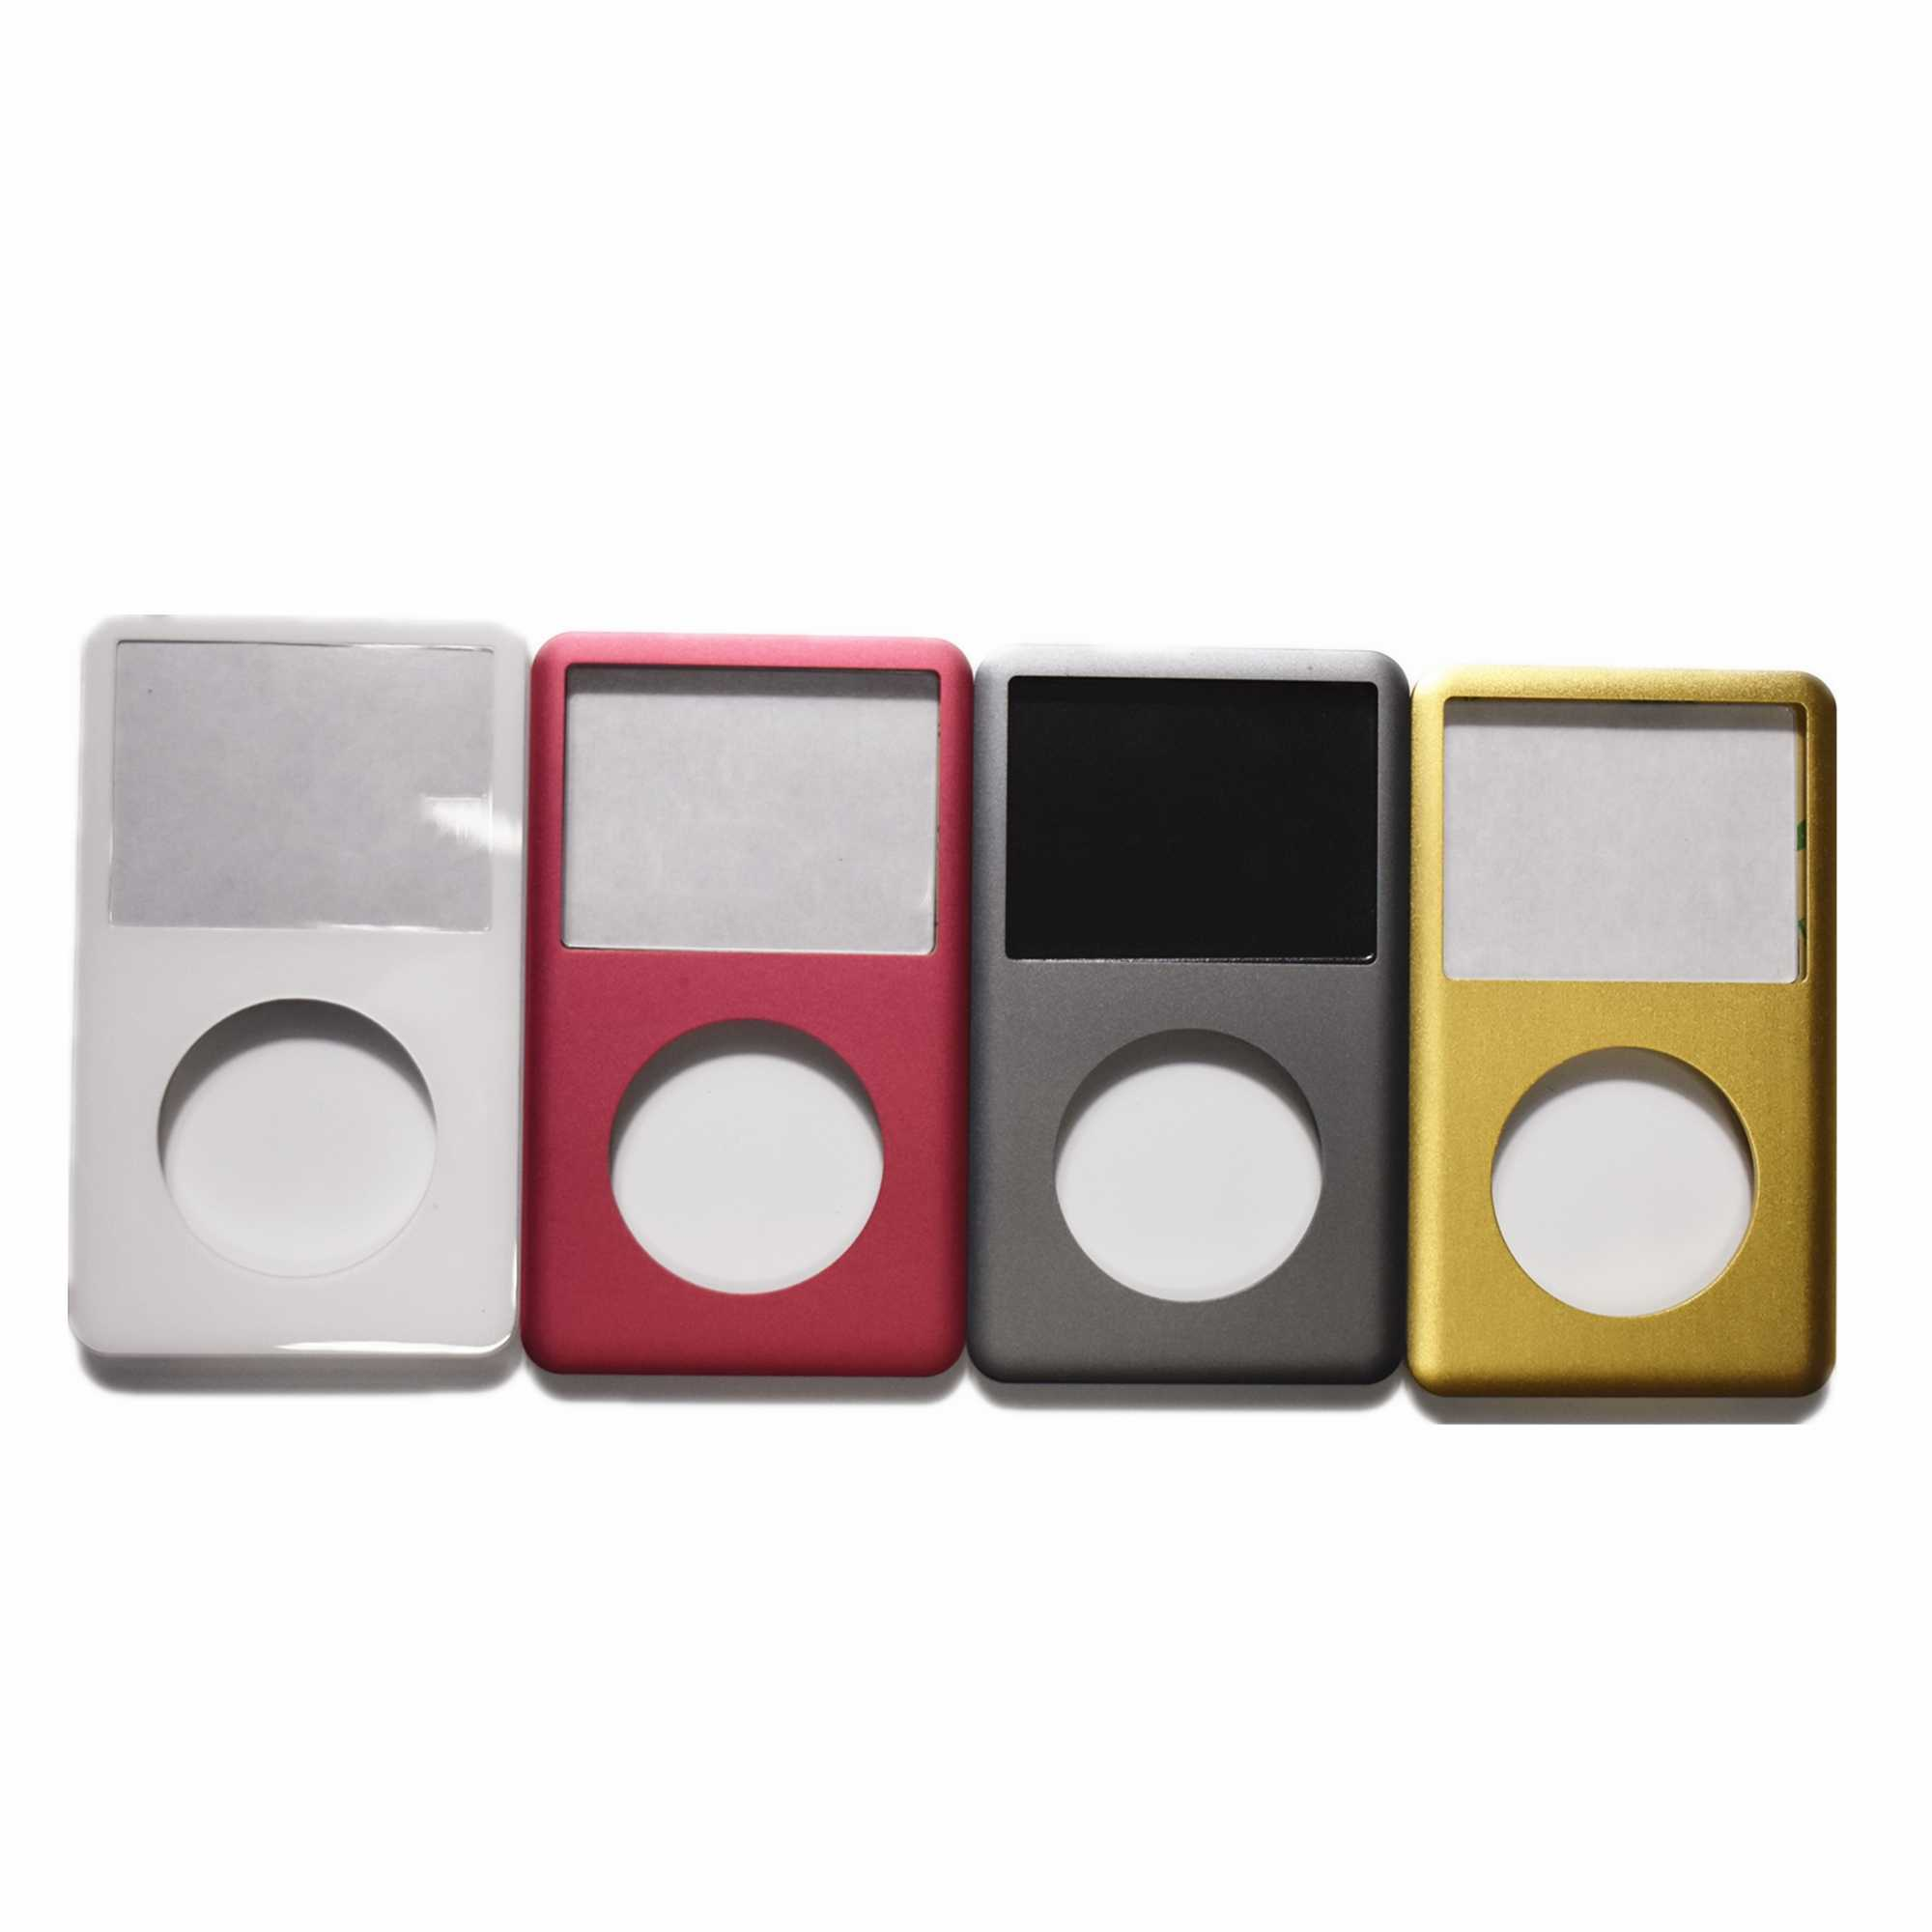 For Ipod Video Ipod Classic Front Housing Case Transparent Cover Clear Plastic Shell For Ipod 5th Gen Video For Ipad Classic Aliexpress